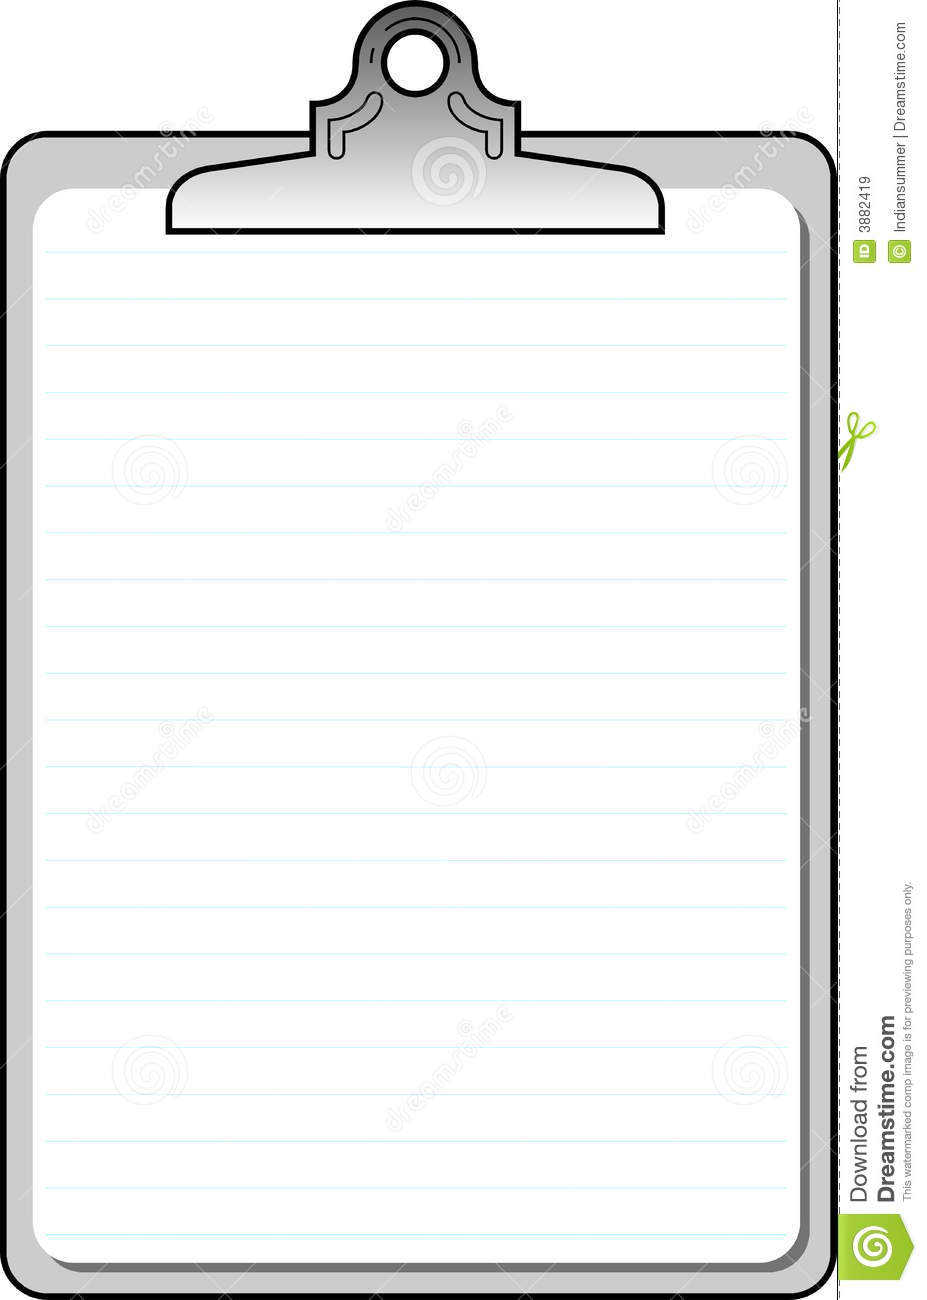 blank lined notebook background stock vector